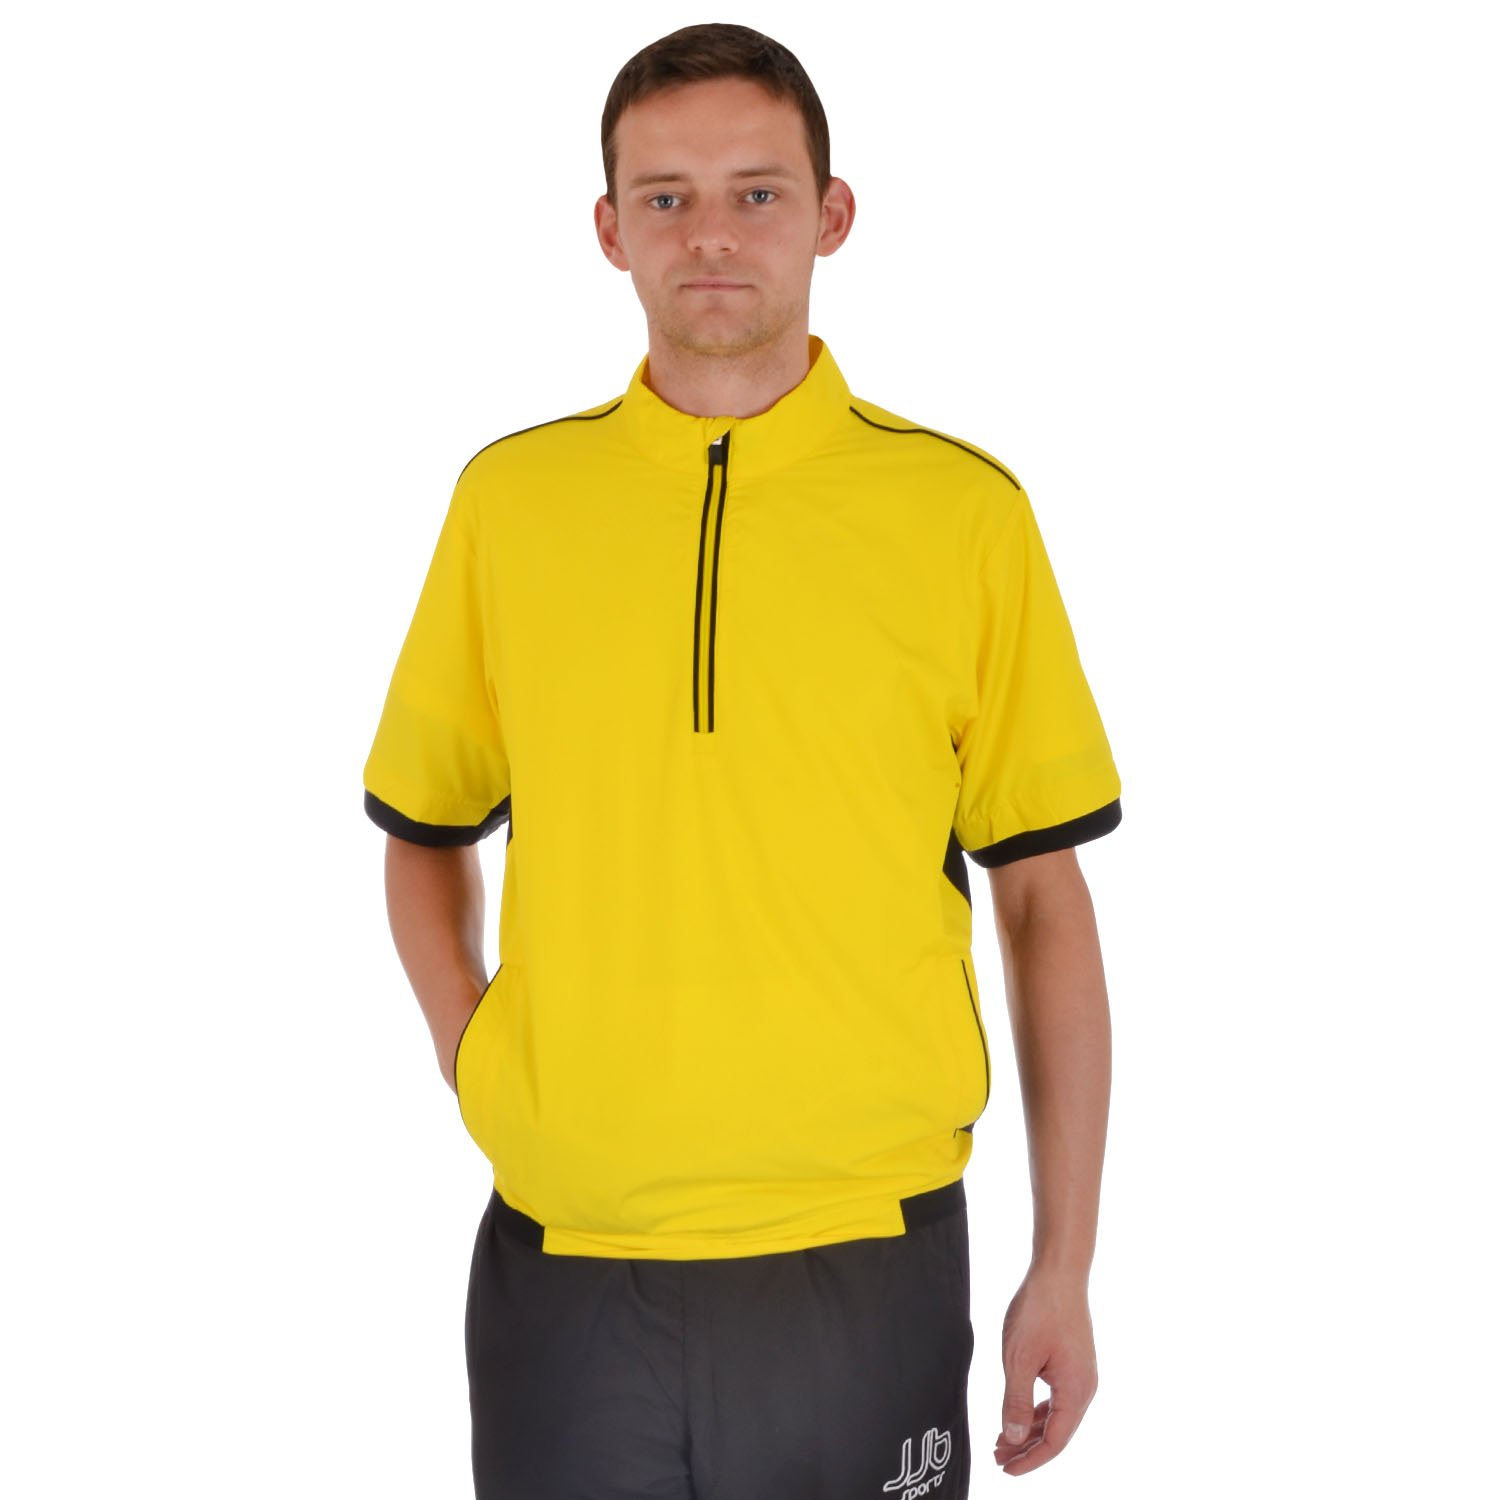 adidas Performance Mens ClimaProof Stretch Short Sleeve Golf Jacket - Large